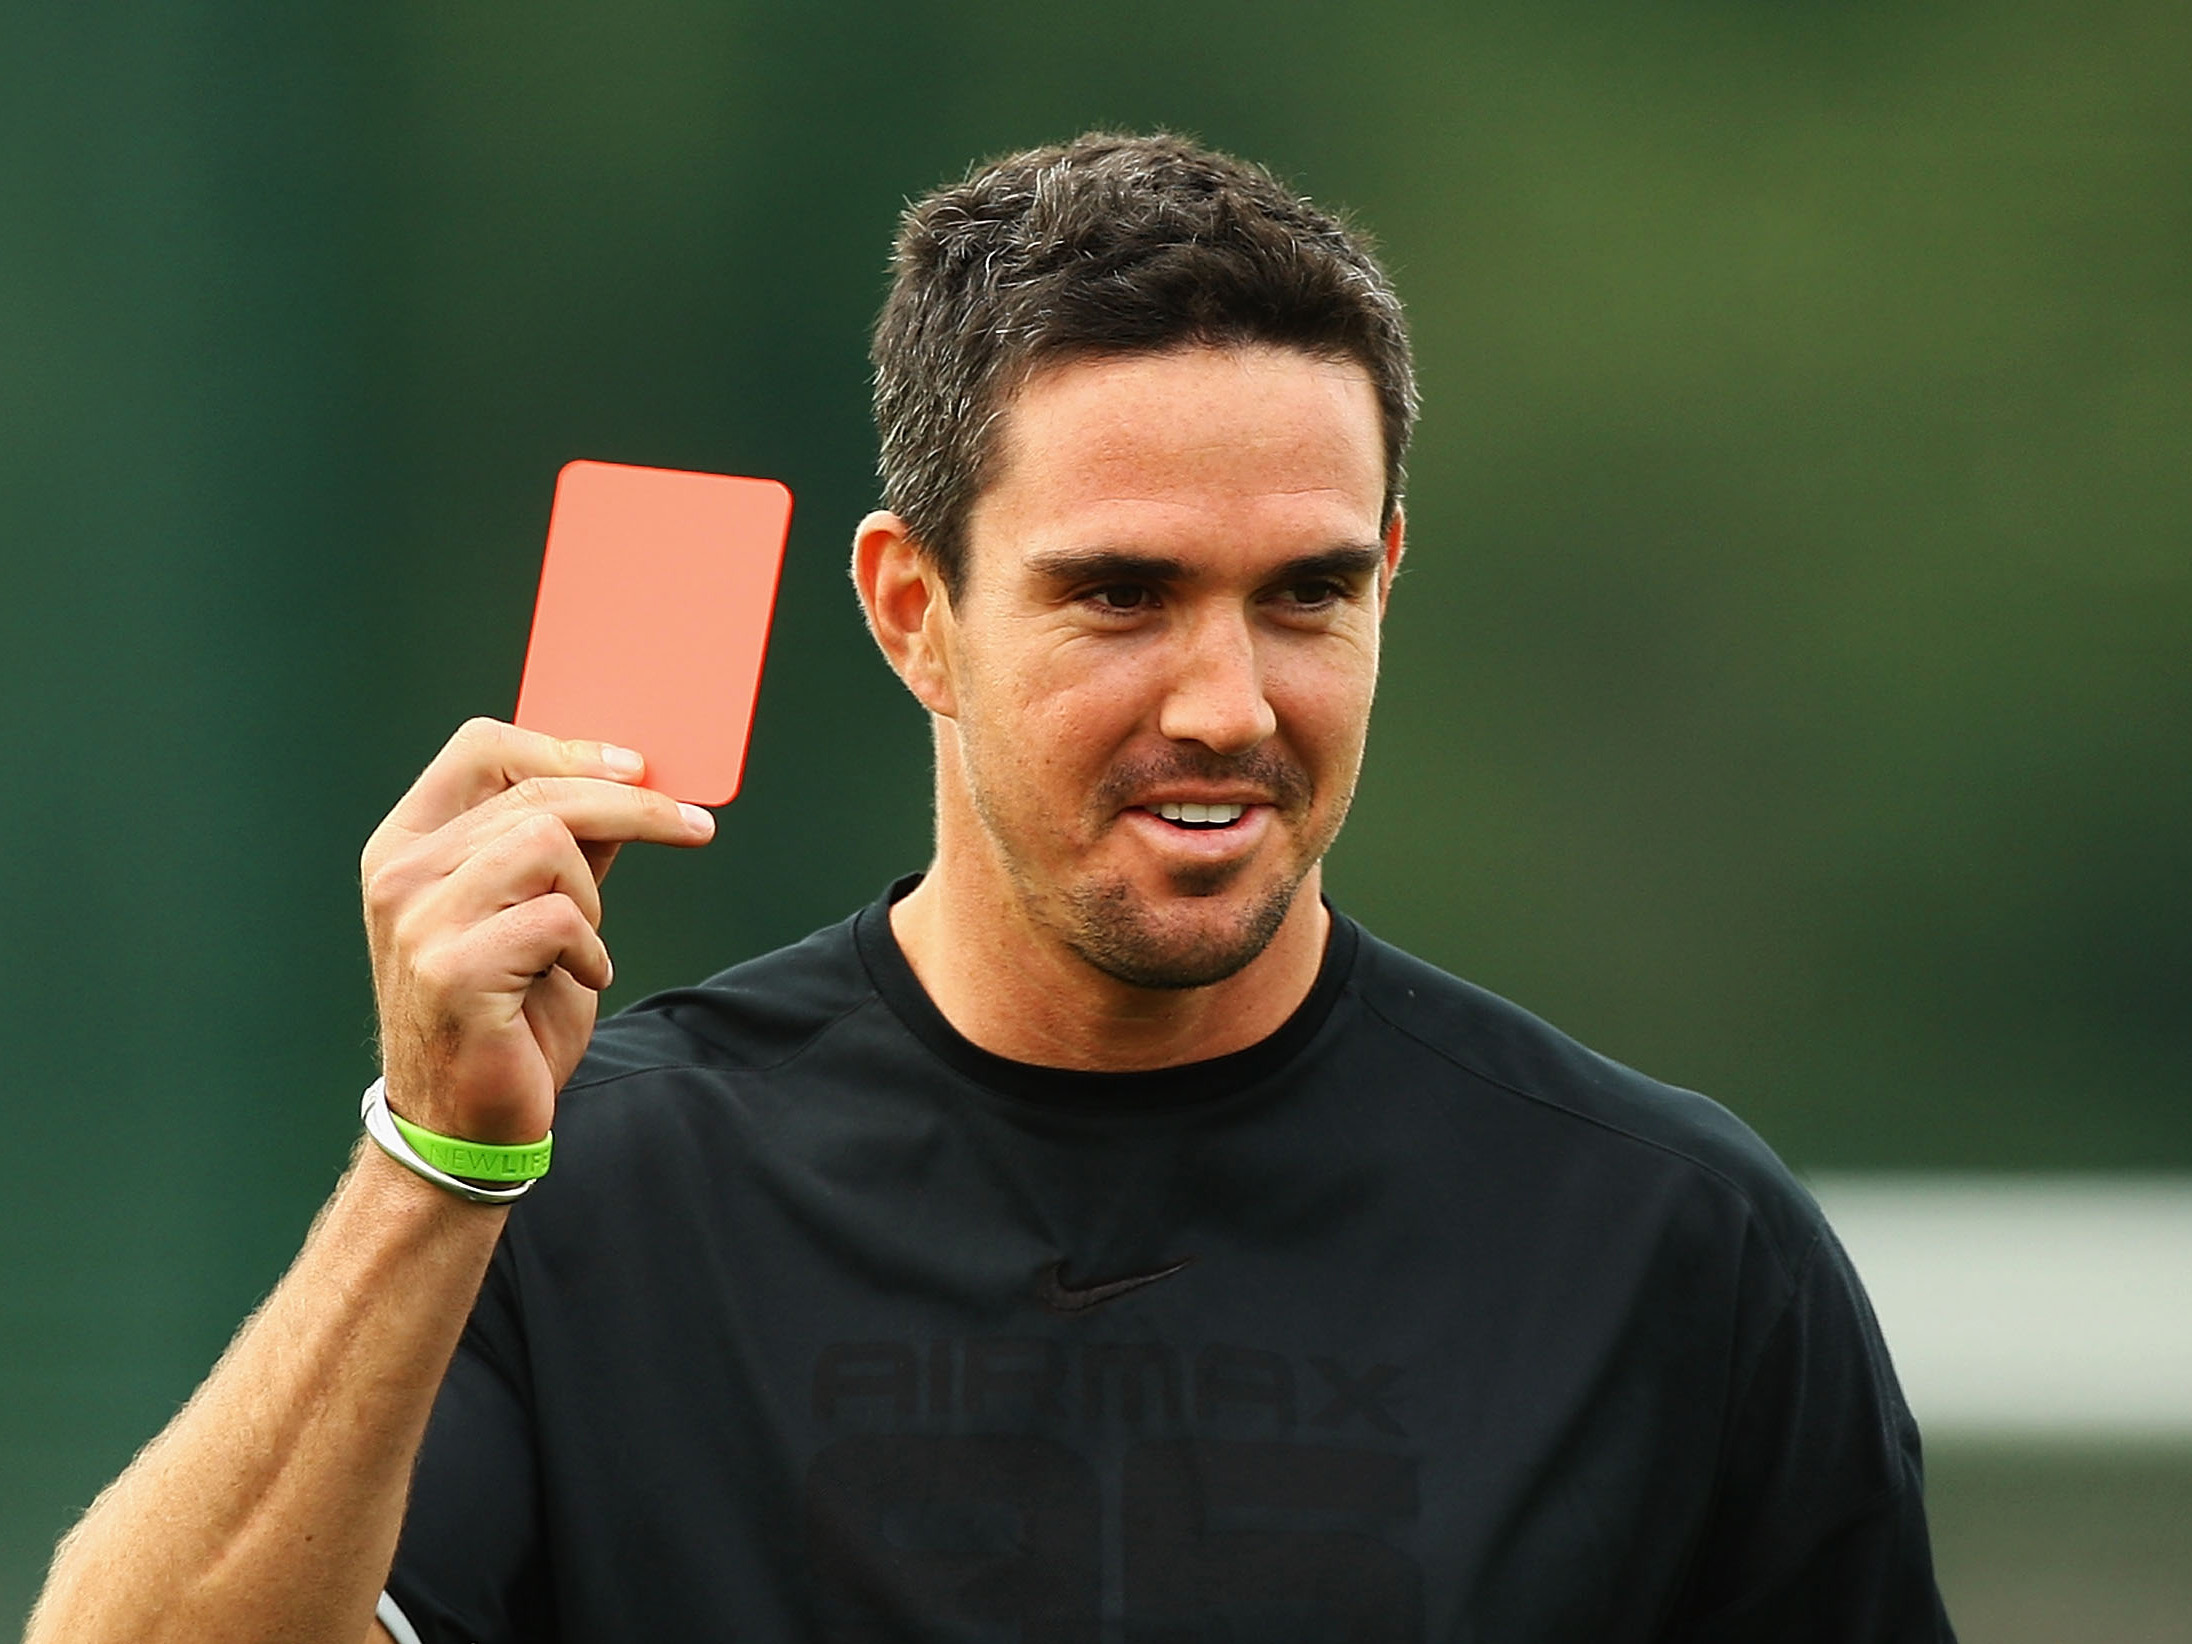 NOTTINGHAM, ENGLAND - JUNE 09: Kevin Pietersen of England produces a red card during a game of football at Gresham Sports Park on June 9, 2009 in Nottingham, England. (Photo by Matthew Lewis/Getty Images)